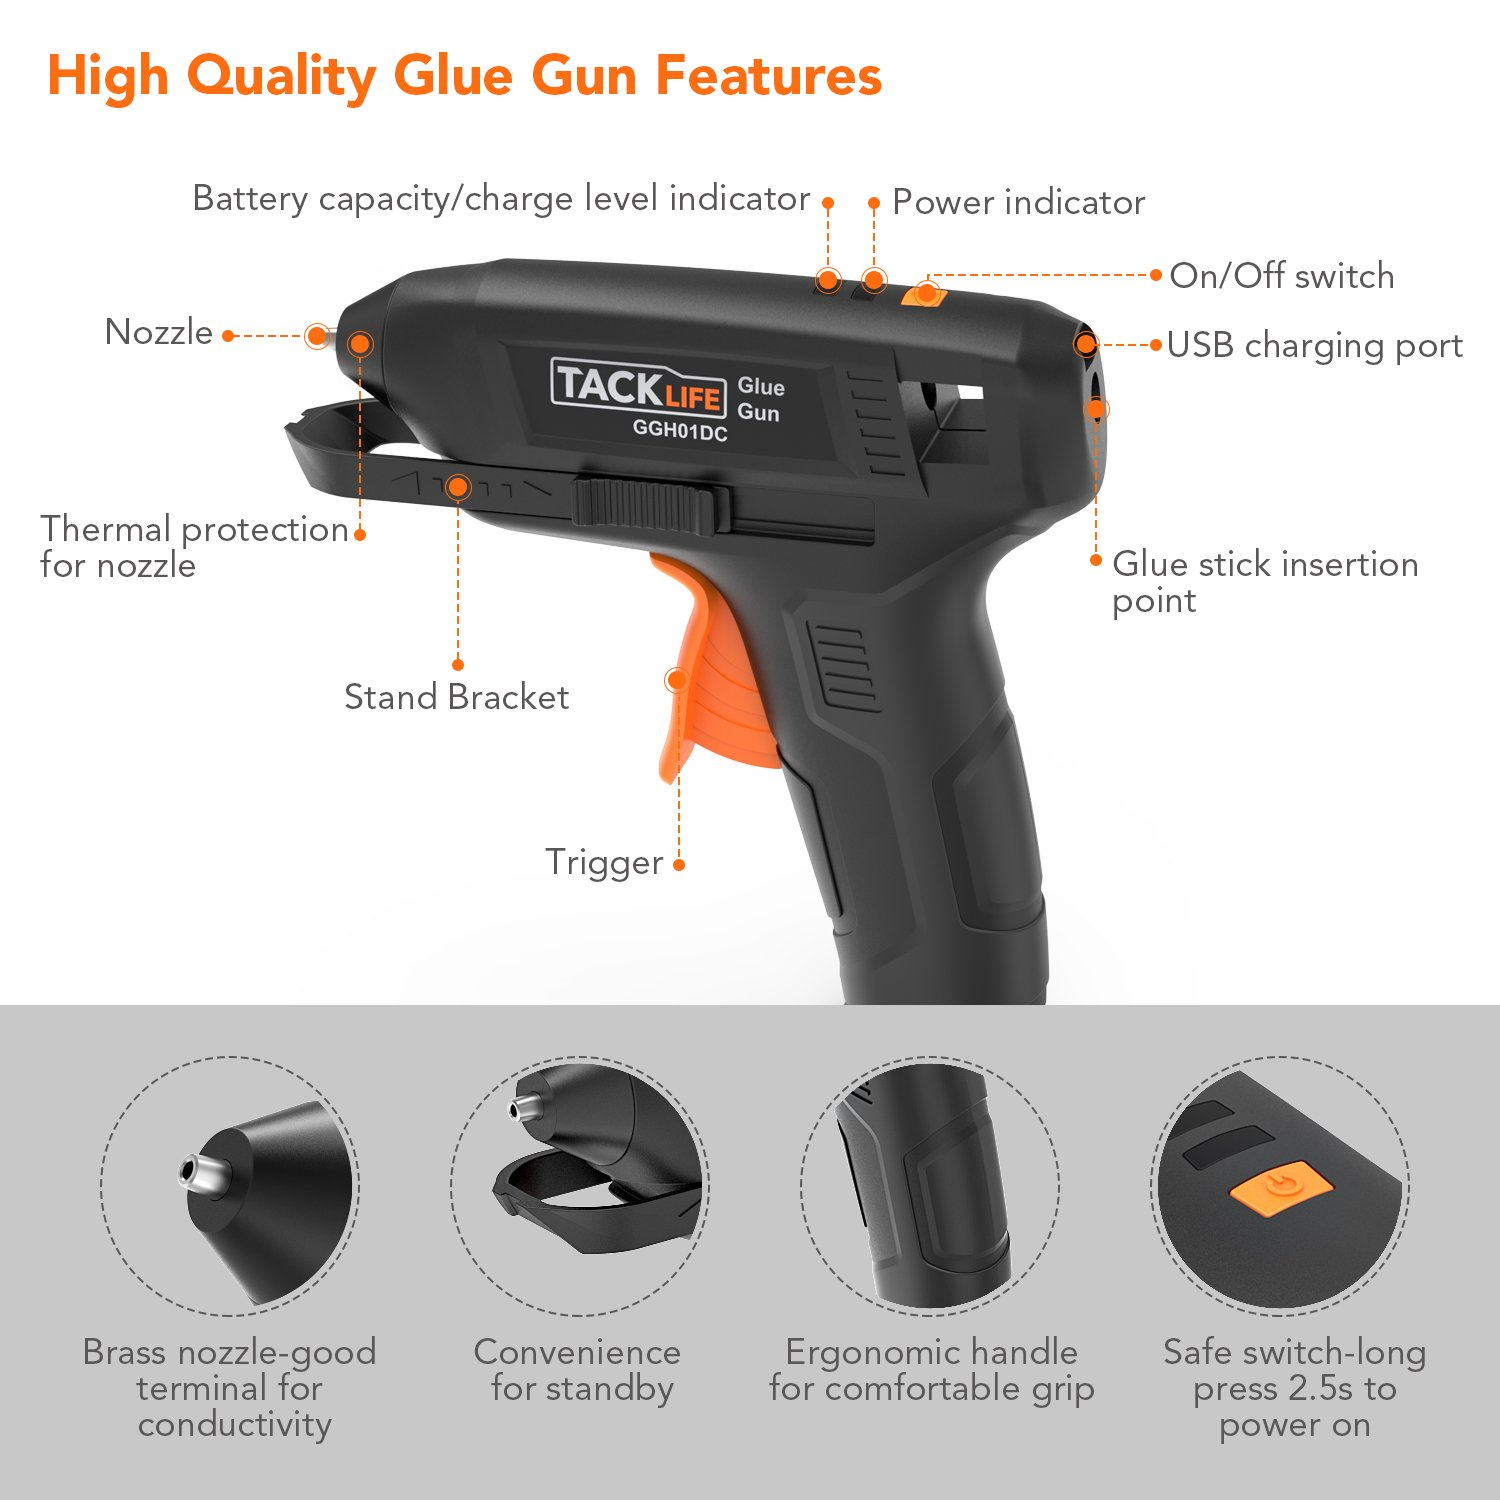 Hot Glue Gun Cordless with 50pcs Glue Sticks, Tacklife 3.6V Rechargeable Melting Glue Gun with USB Charging Cable, Seperate On/Off Switch for DIY and Repair Kit - GGH01DC by TACKLIFE (Image #2)